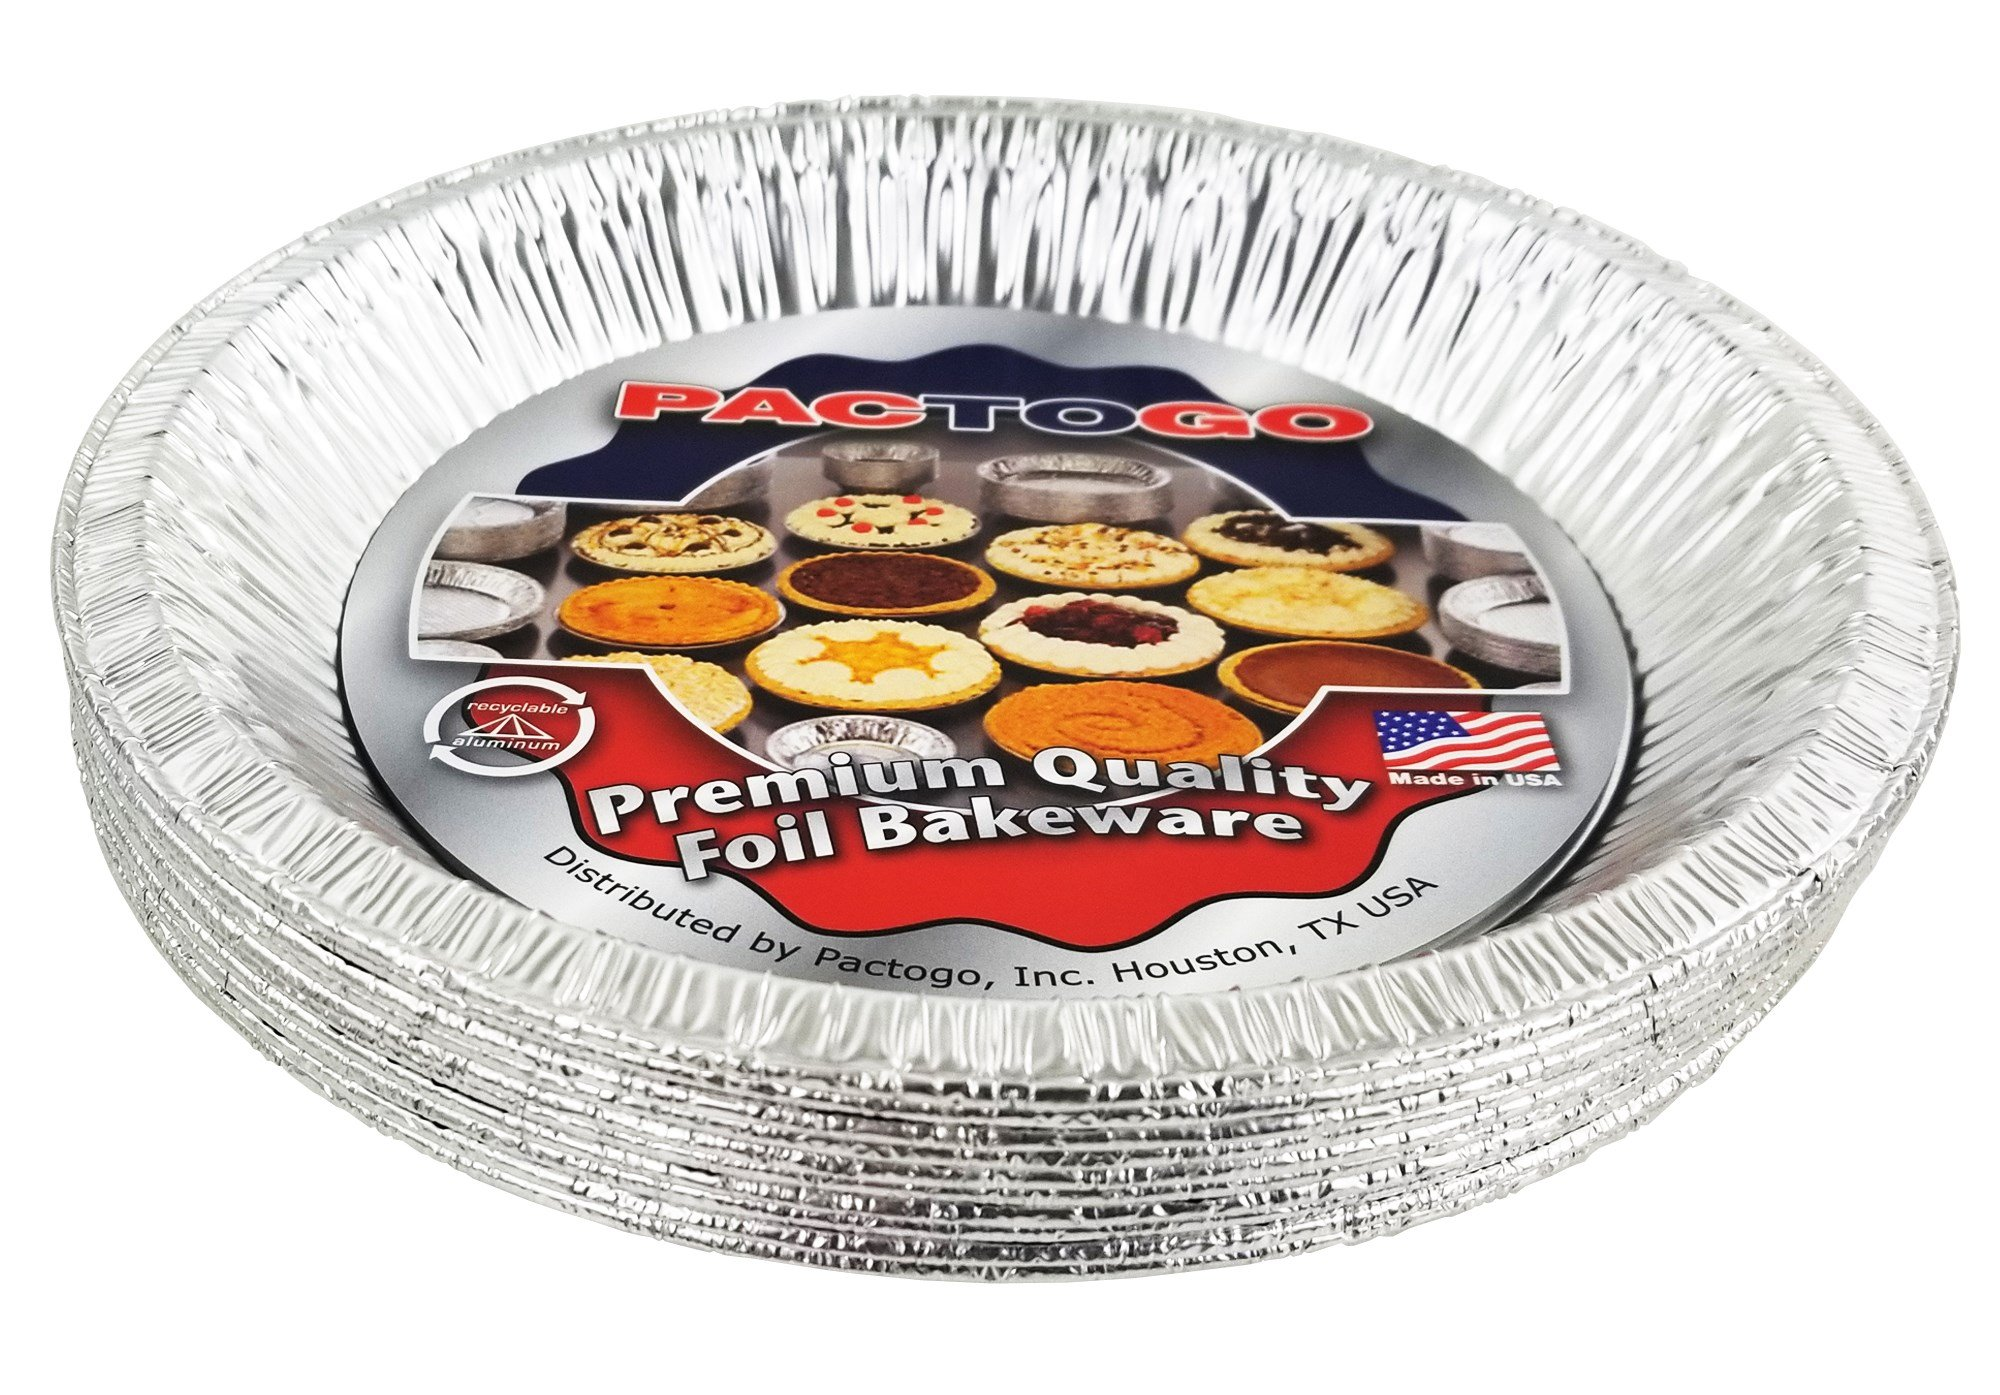 Pactogo 10'' (Actual Top-Out 9-5/8 Inches - Top-In 8-3/4 Inches) Aluminum Foil Pie Pan - Disposable Baking Tin Plates (Pack of 12) by PACTOGO (Image #4)